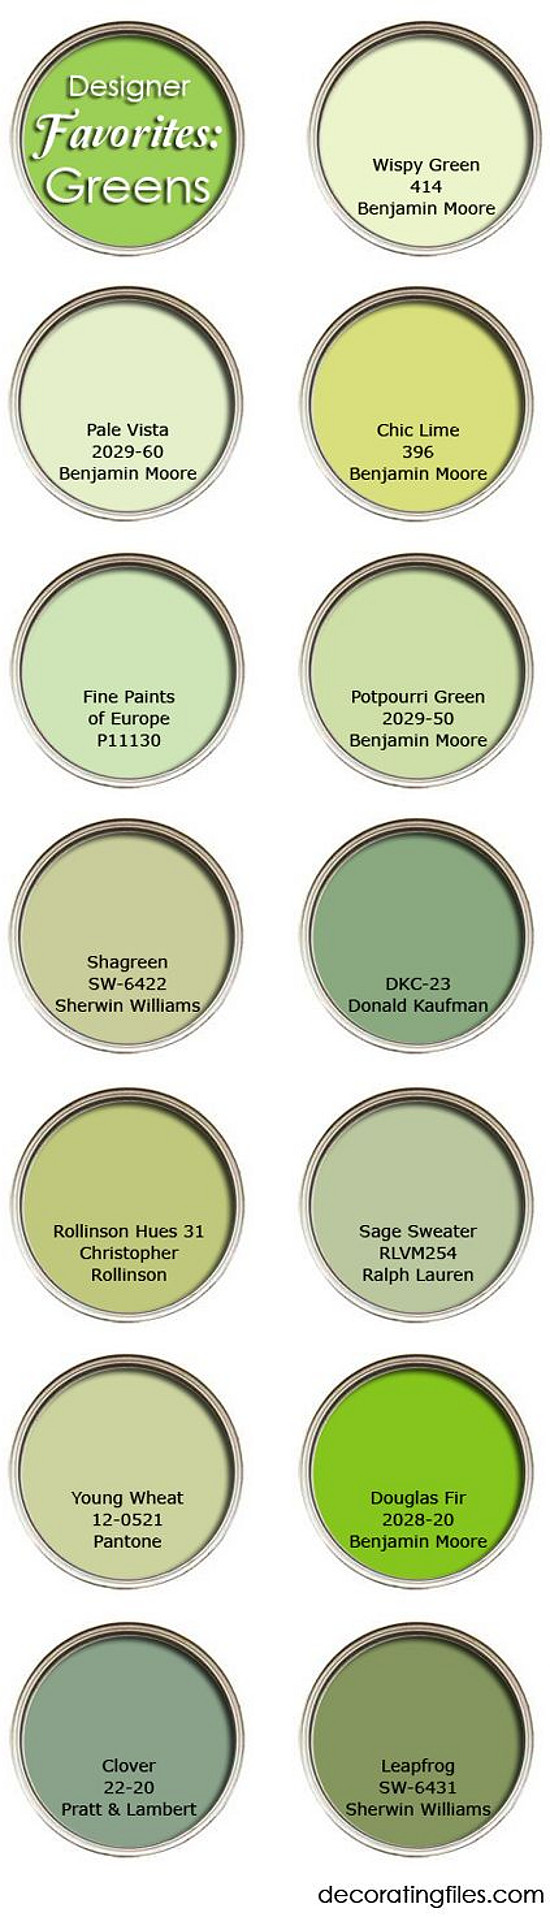 Best Green Paint Colors for interiors, exteriors, front door. Wispy Green 414 Benjamin Moore. Pale Vista 2029-60 Benjamin Moore. Chic Lime 396 Benjamin Moore. Fine Paints of Europe P11130. Potpourri Green 2029-50 Benjamin Moore. Shagreen SW-6422 Sherwin Williams. DKC-23 Donald Kaufman. Rollinson Hues 31 Christopher Rollinson. Sage Sweater RLVM254 Ralph Lauren. Young Wheat 12-0521 Pantone. Douglas Fir 2028-20 Benjamin Moore. Clover 22-20 Pratt and Lambert. Leapfrog SW-6431 Sherwin Williams. #greenPaintColors #Green #Paintcolors Via The Decorating Files.